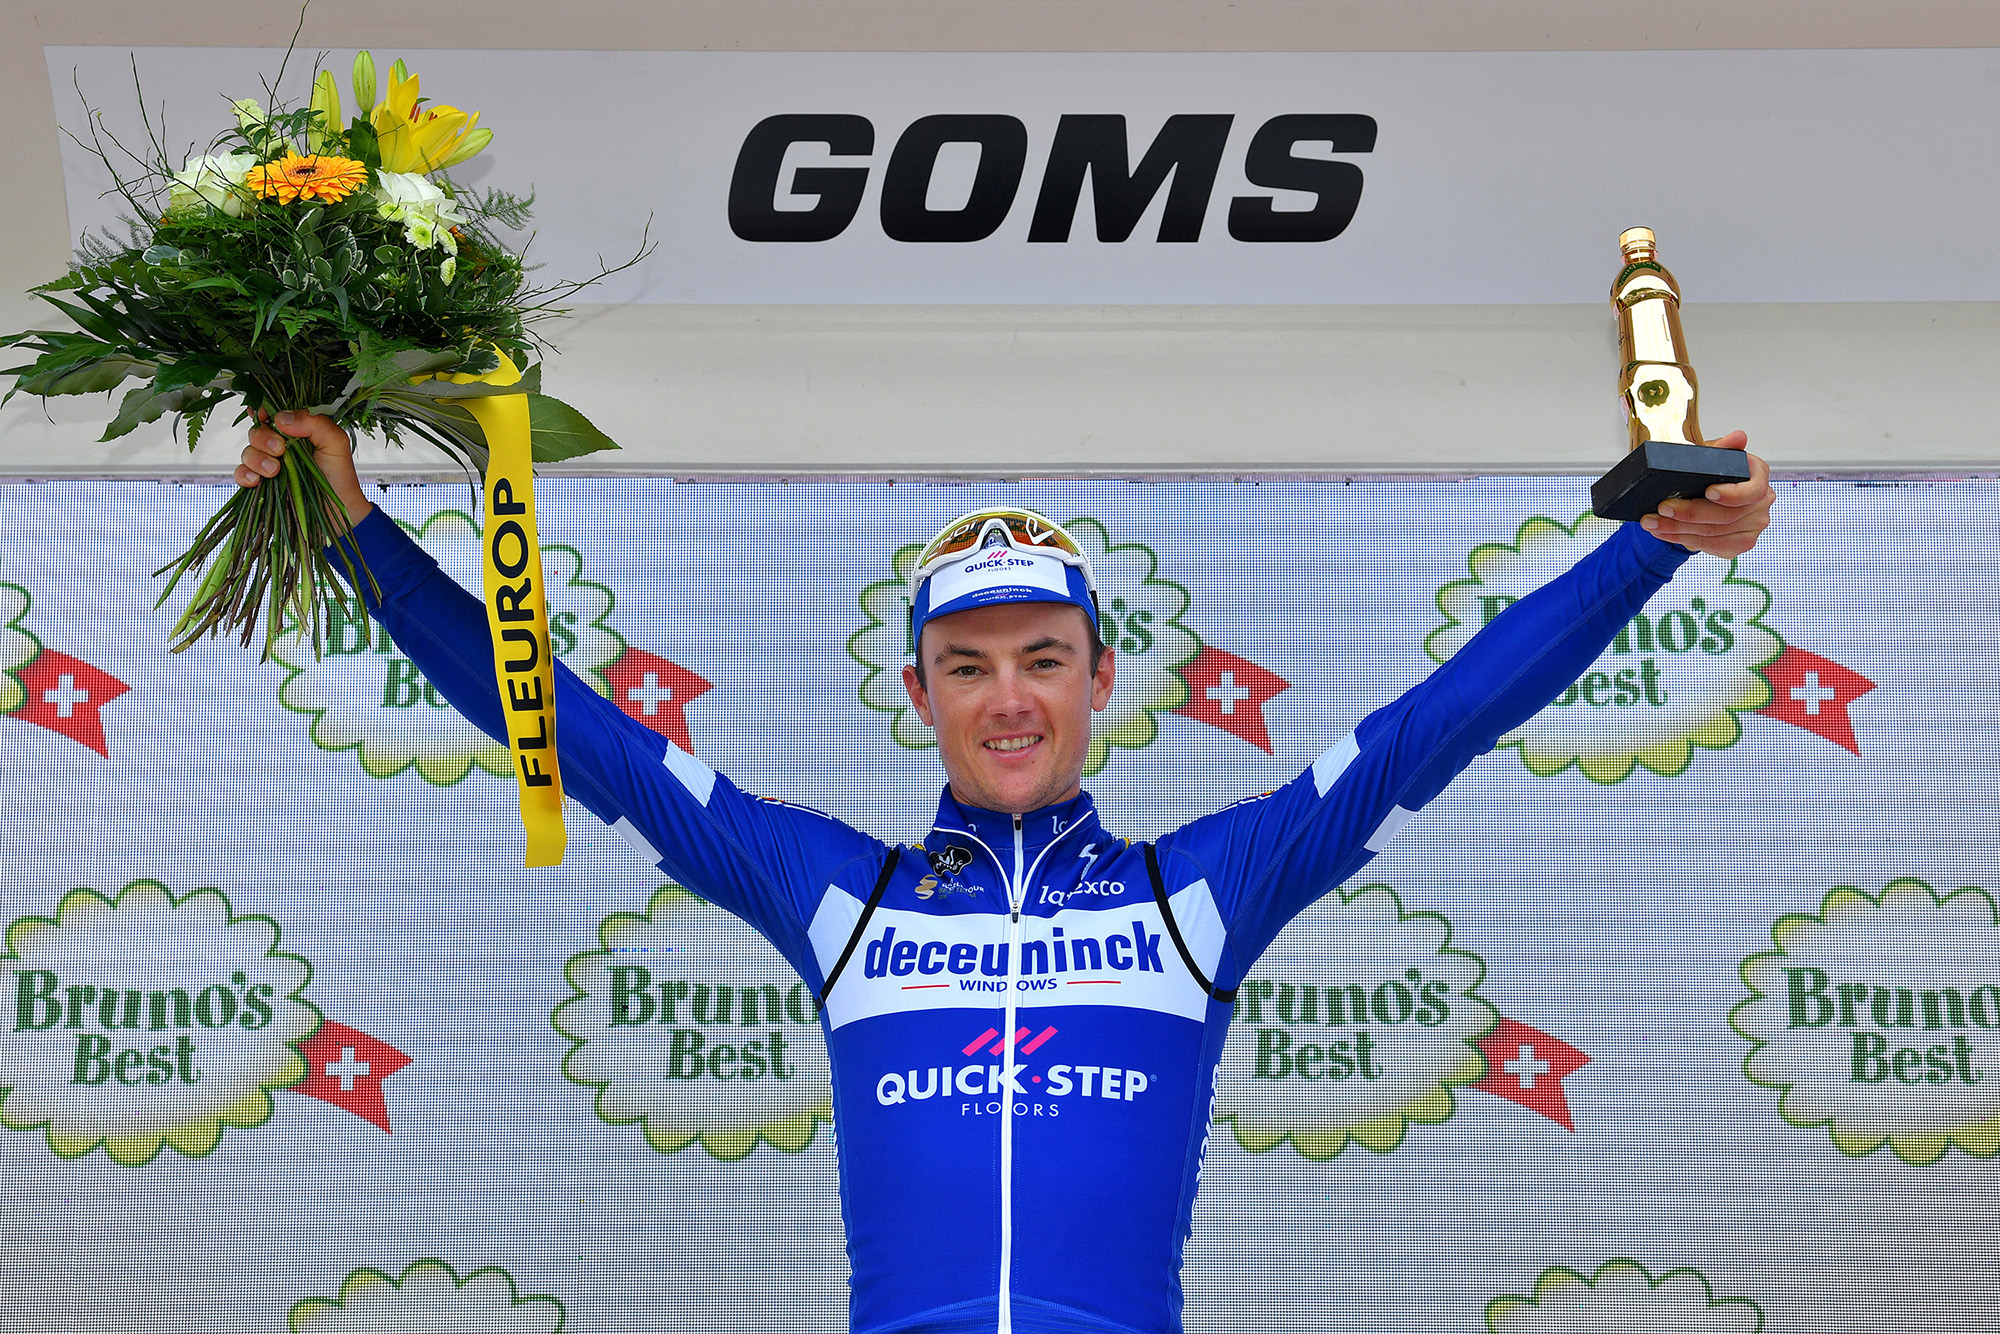 ULTRICHEN, SWITZERLAND - JUNE 22: Podium / Yves Lampaert of Belgium and Team Deceuninck - Quick-Step / Celebration / Flowers / Trophy / during the 83rd Tour of Switzerland, Stage 8 a 19,2km Individual Time Trial stage from Ulrichen-Goms to Ulrichen-Goms / ITT / TDS / @tds / #tourdesuisse / on June 22, 2019 in Ulrichen, Switzerland. (Photo by Tim de Waele/Getty Images)